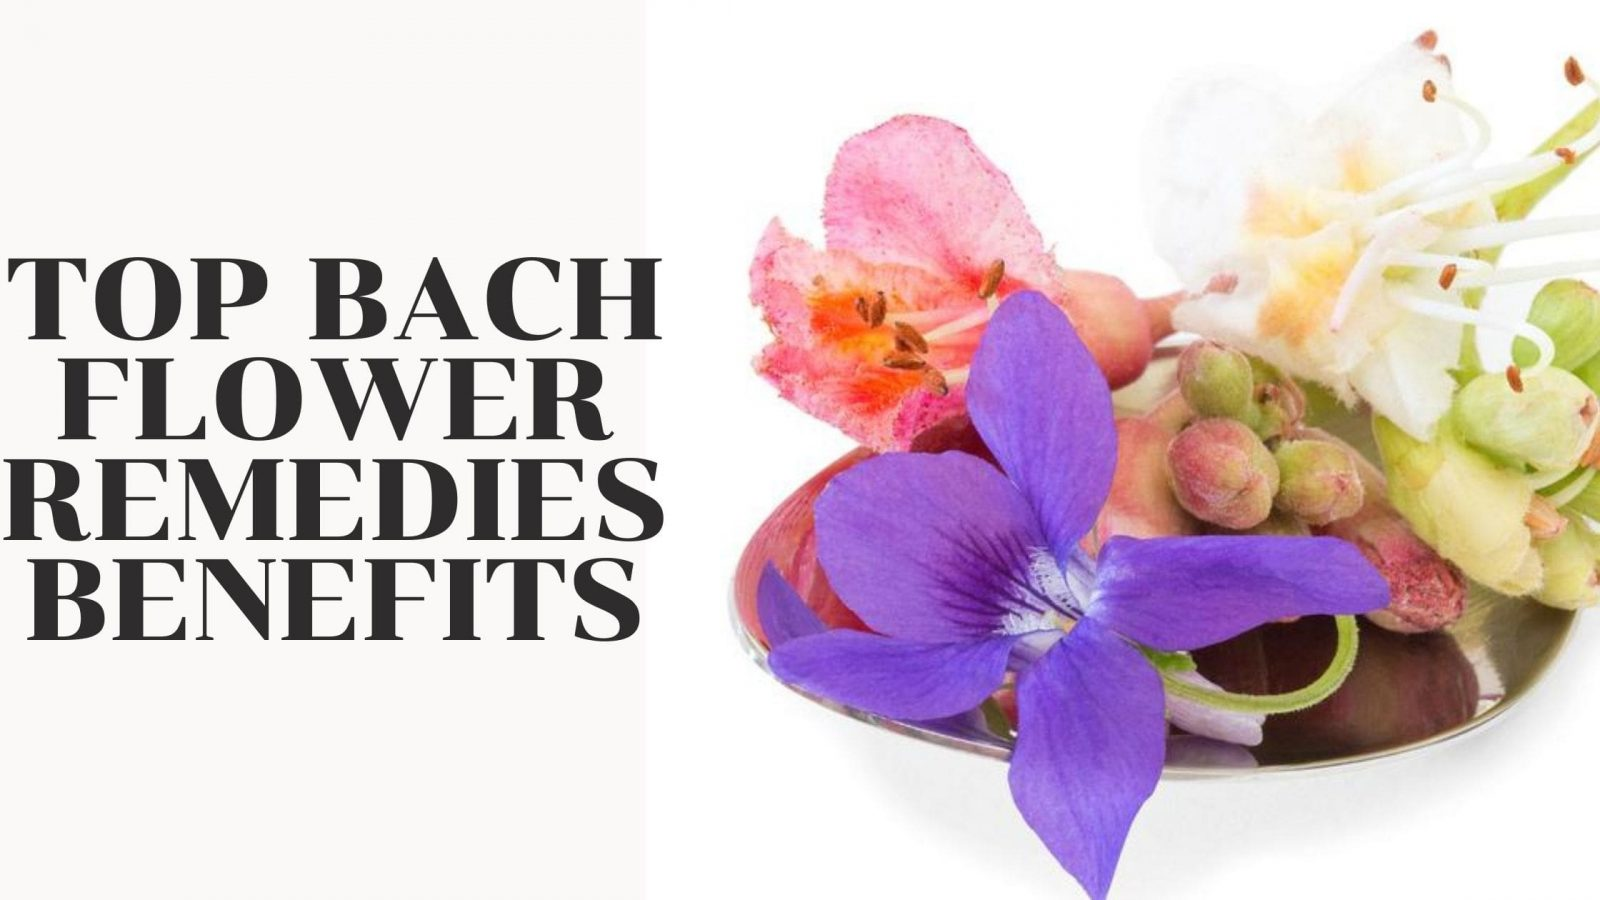 Top Bach Flower Remedies Benefits